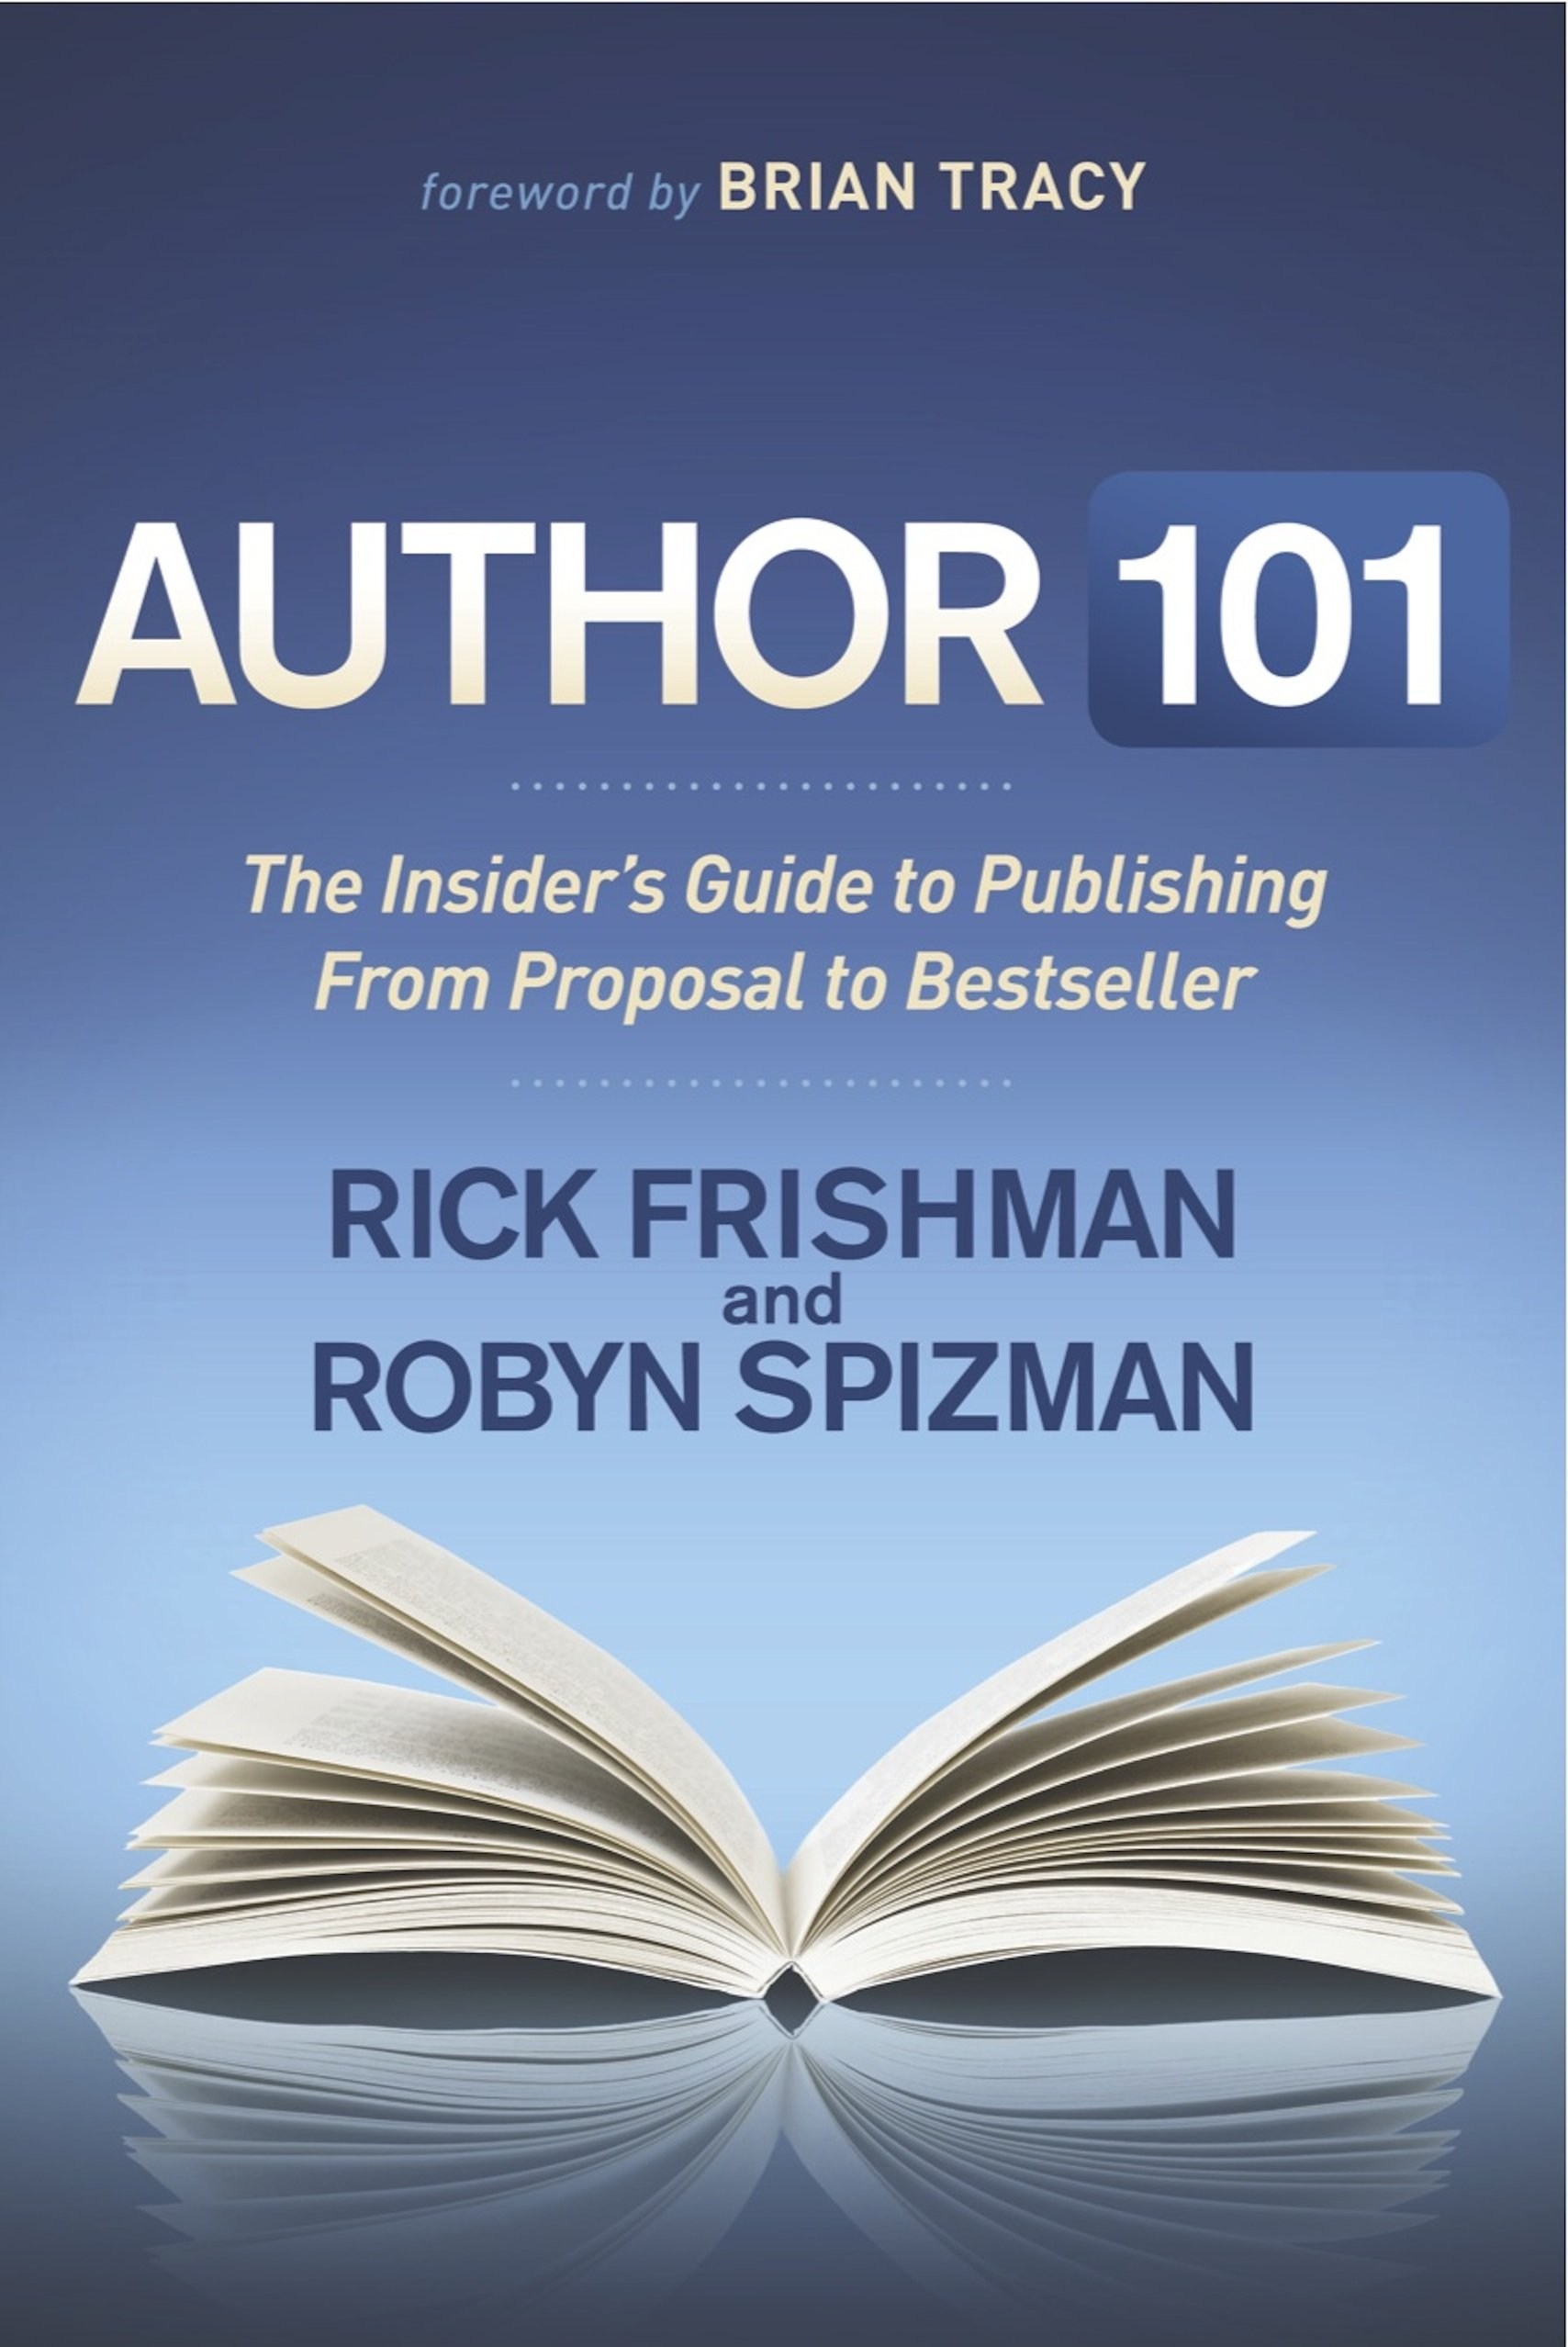 Download Author 101: The Insider's Guide to Publishing From Proposal to Bestseller PDF